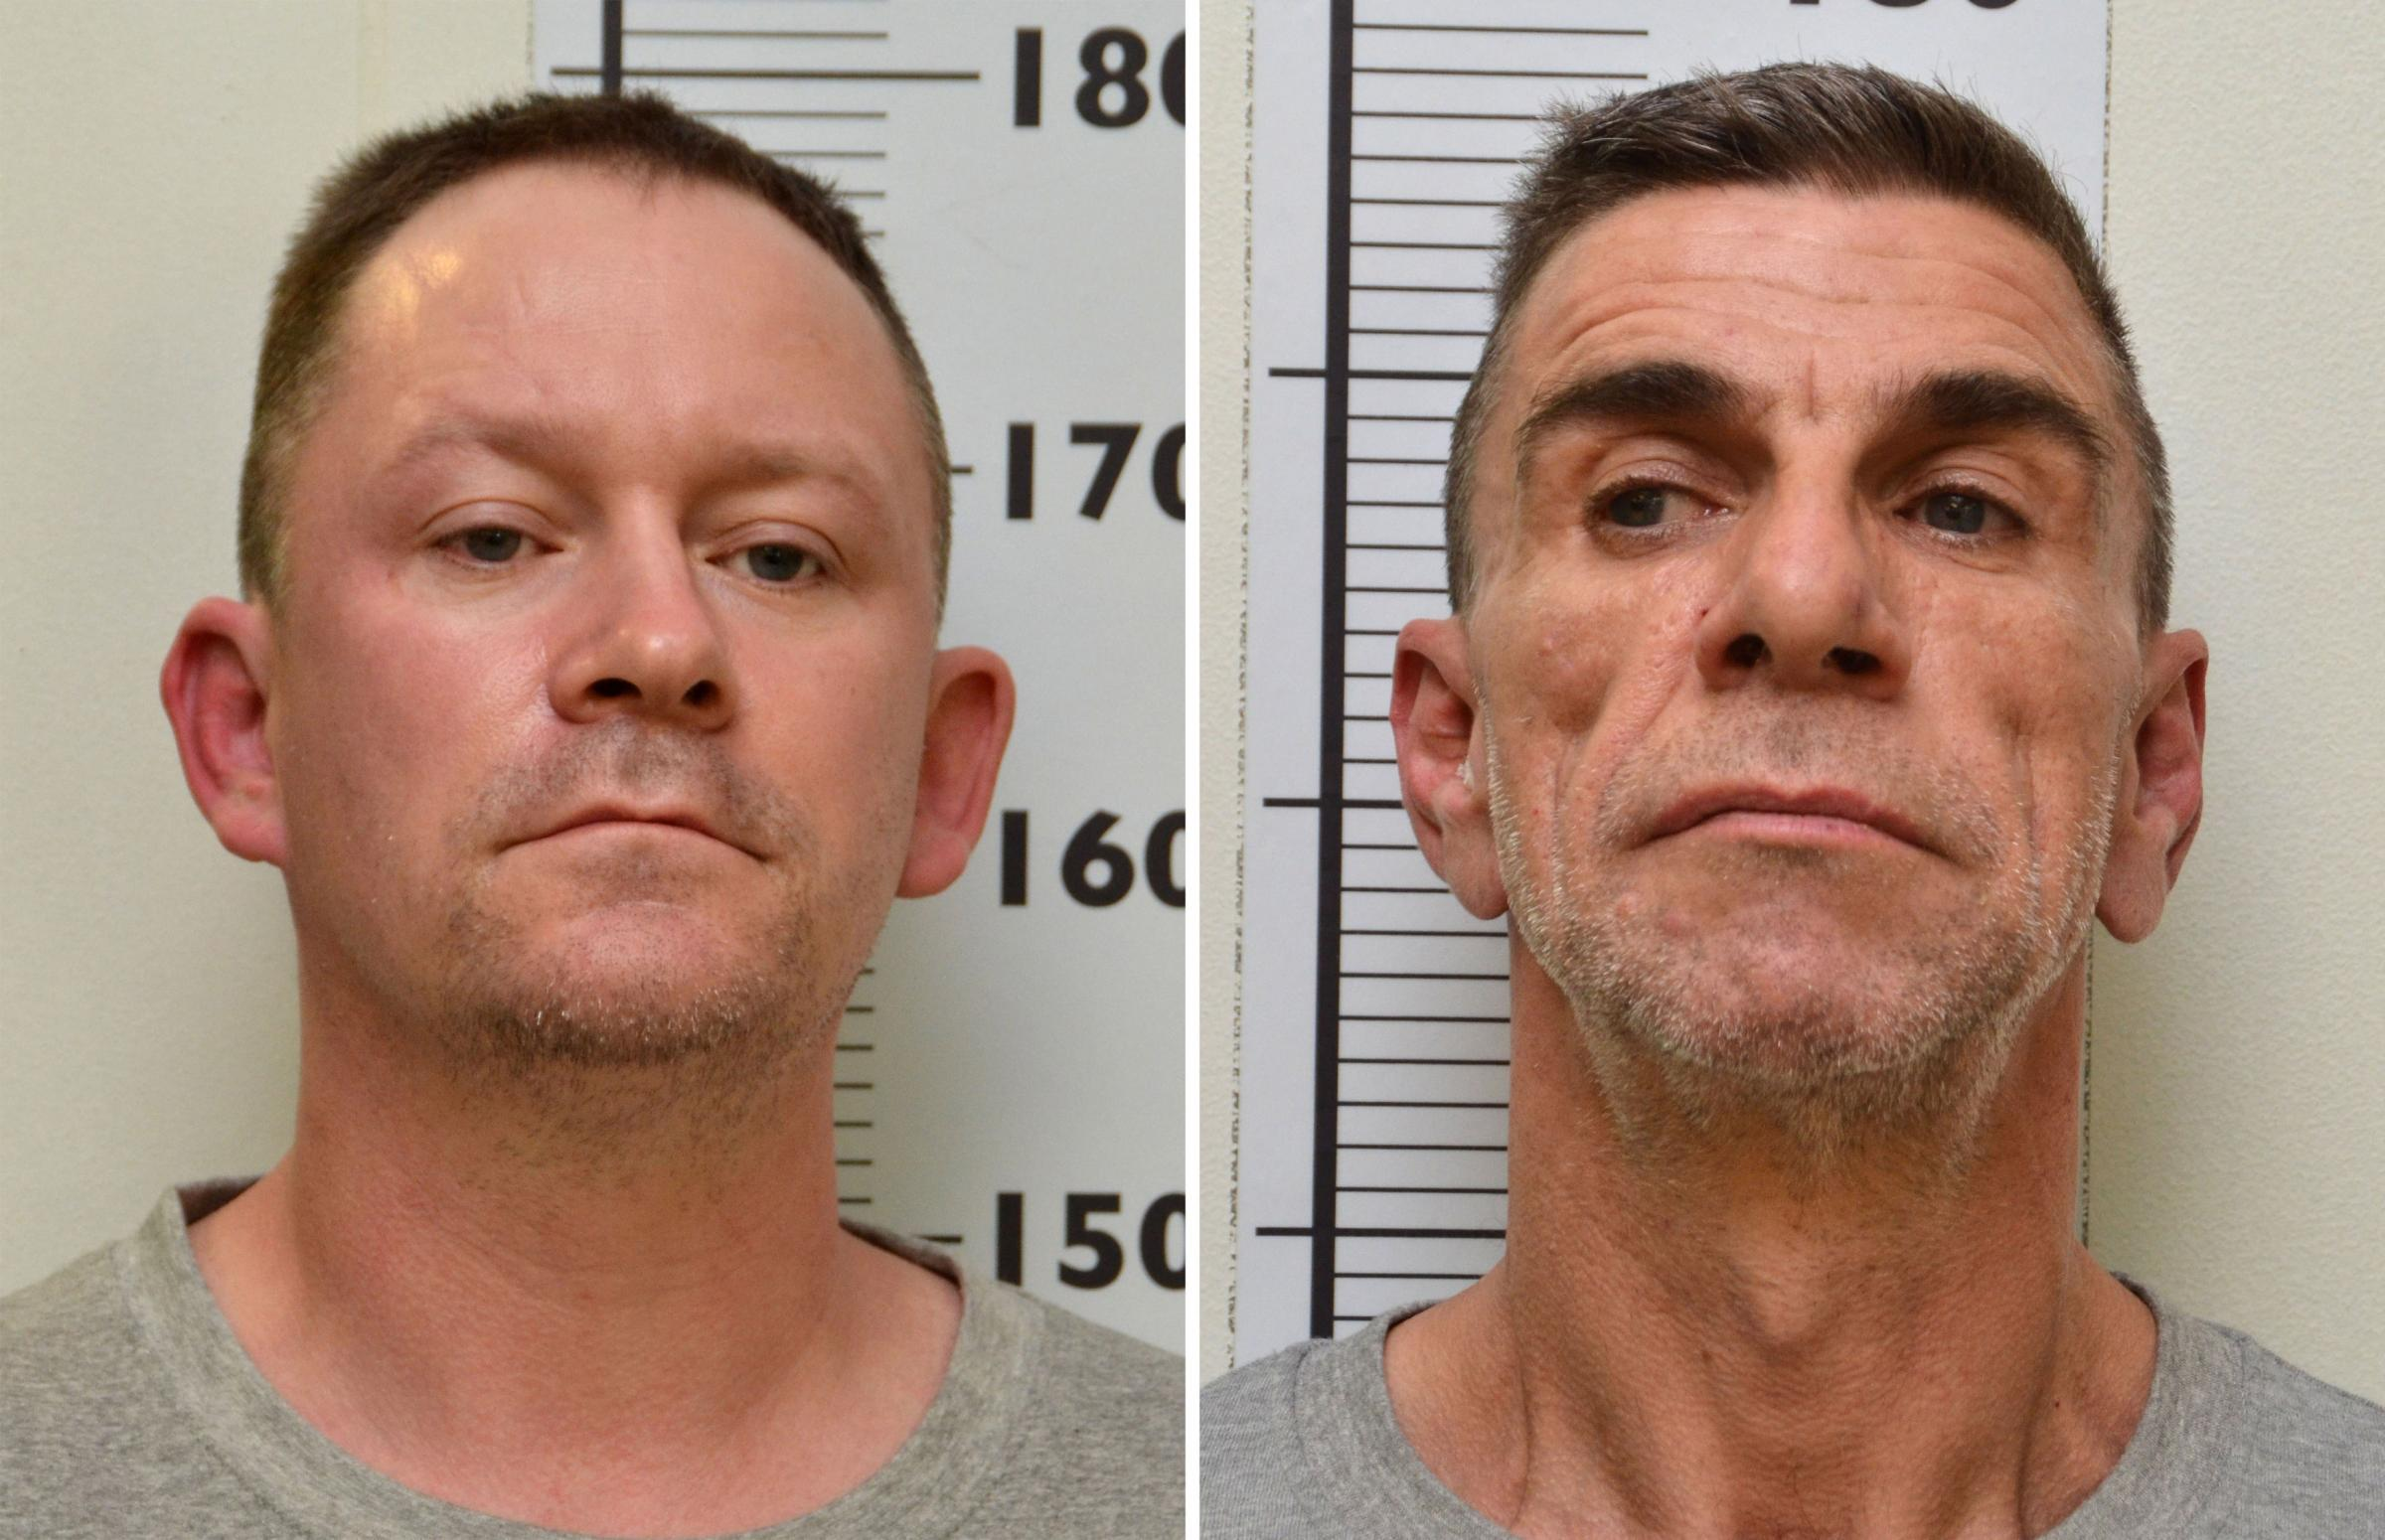 KILLERS: Stephen Unwin (left) and William McFall